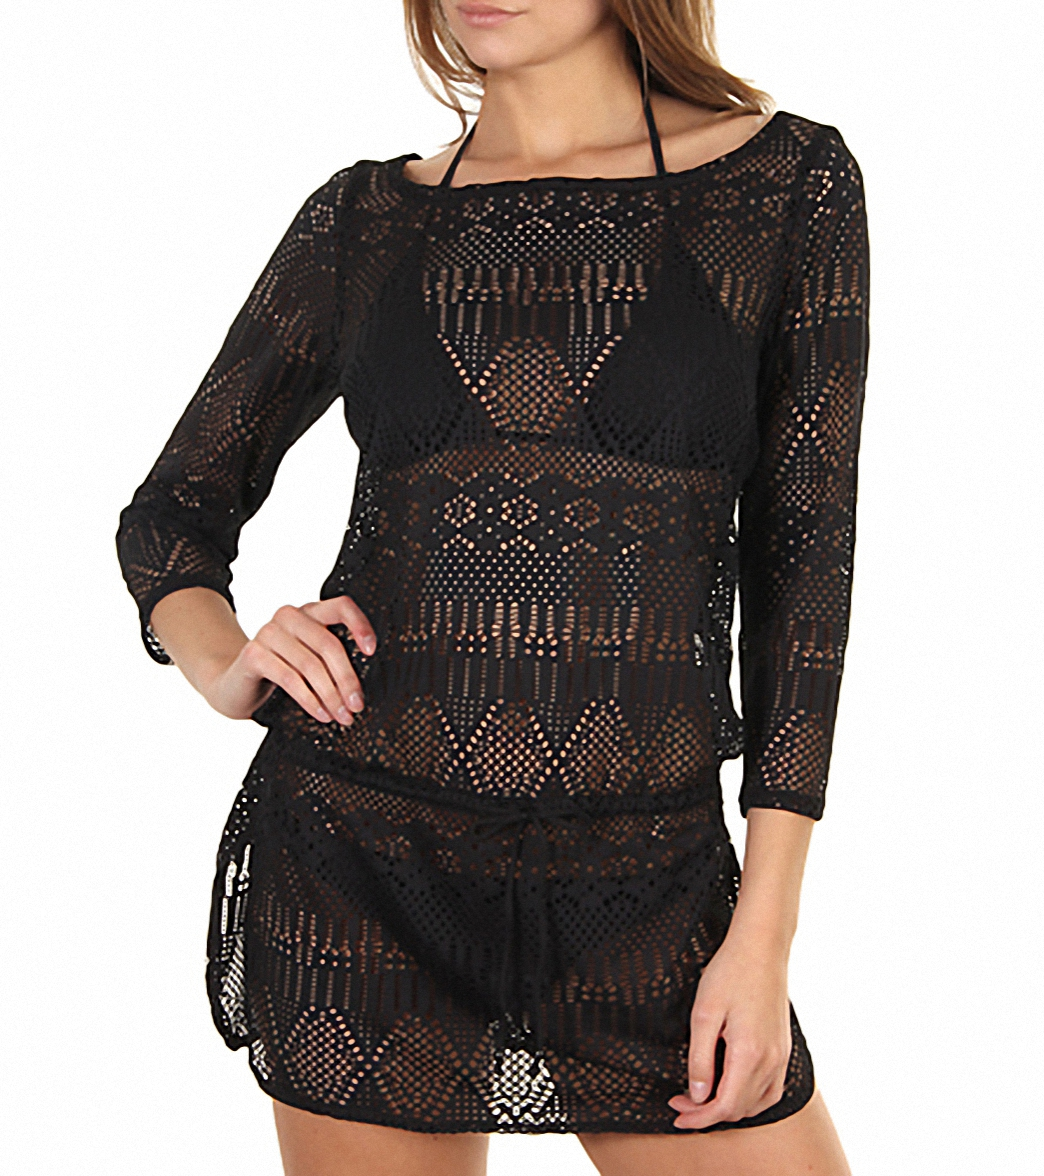 b6d1adcce742c Ralph Lauren Crochet Cover Up Tunic at SwimOutlet.com - Free Shipping